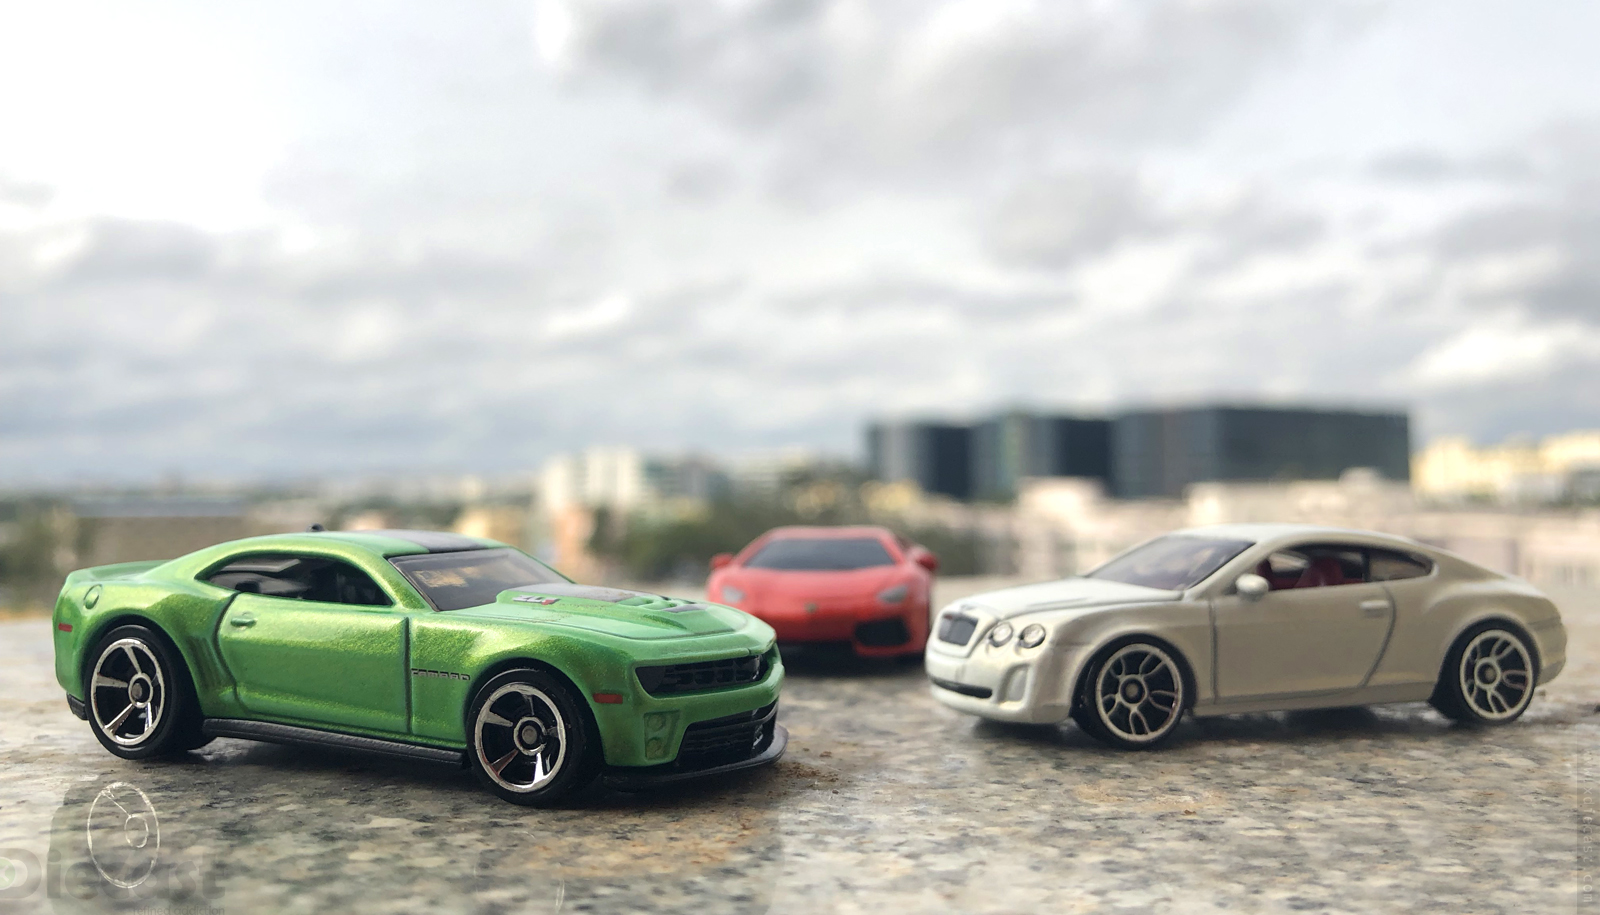 72nd Indian Independence Day Photoshoot With Hotwheels Cars Xdiecast